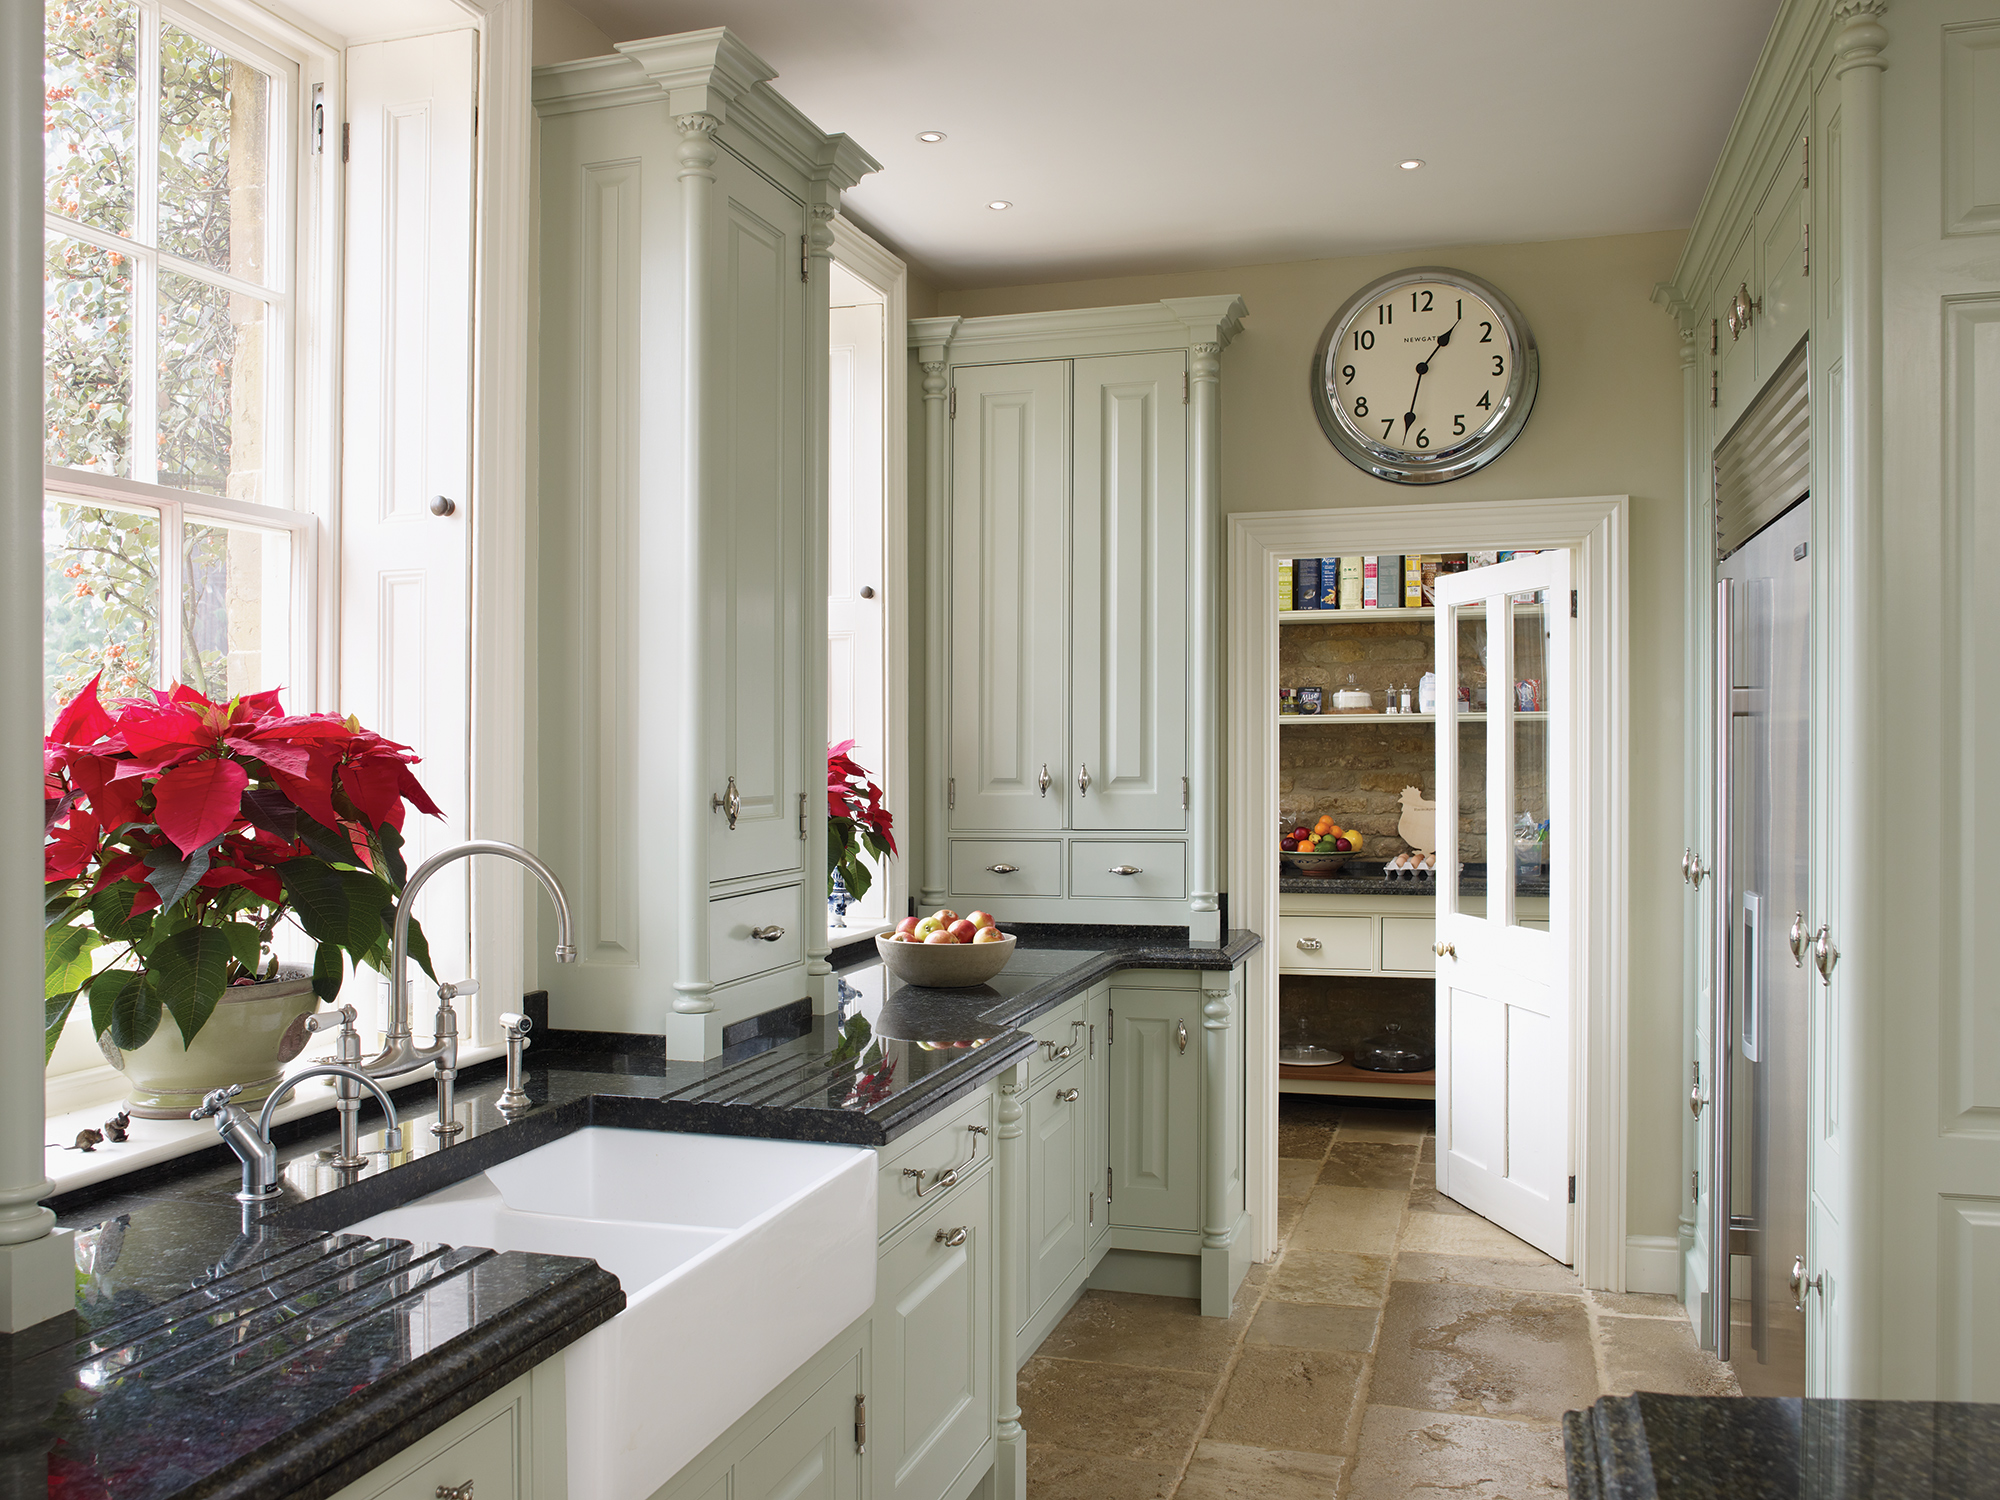 Mark wilkinson furniture collection all house larder